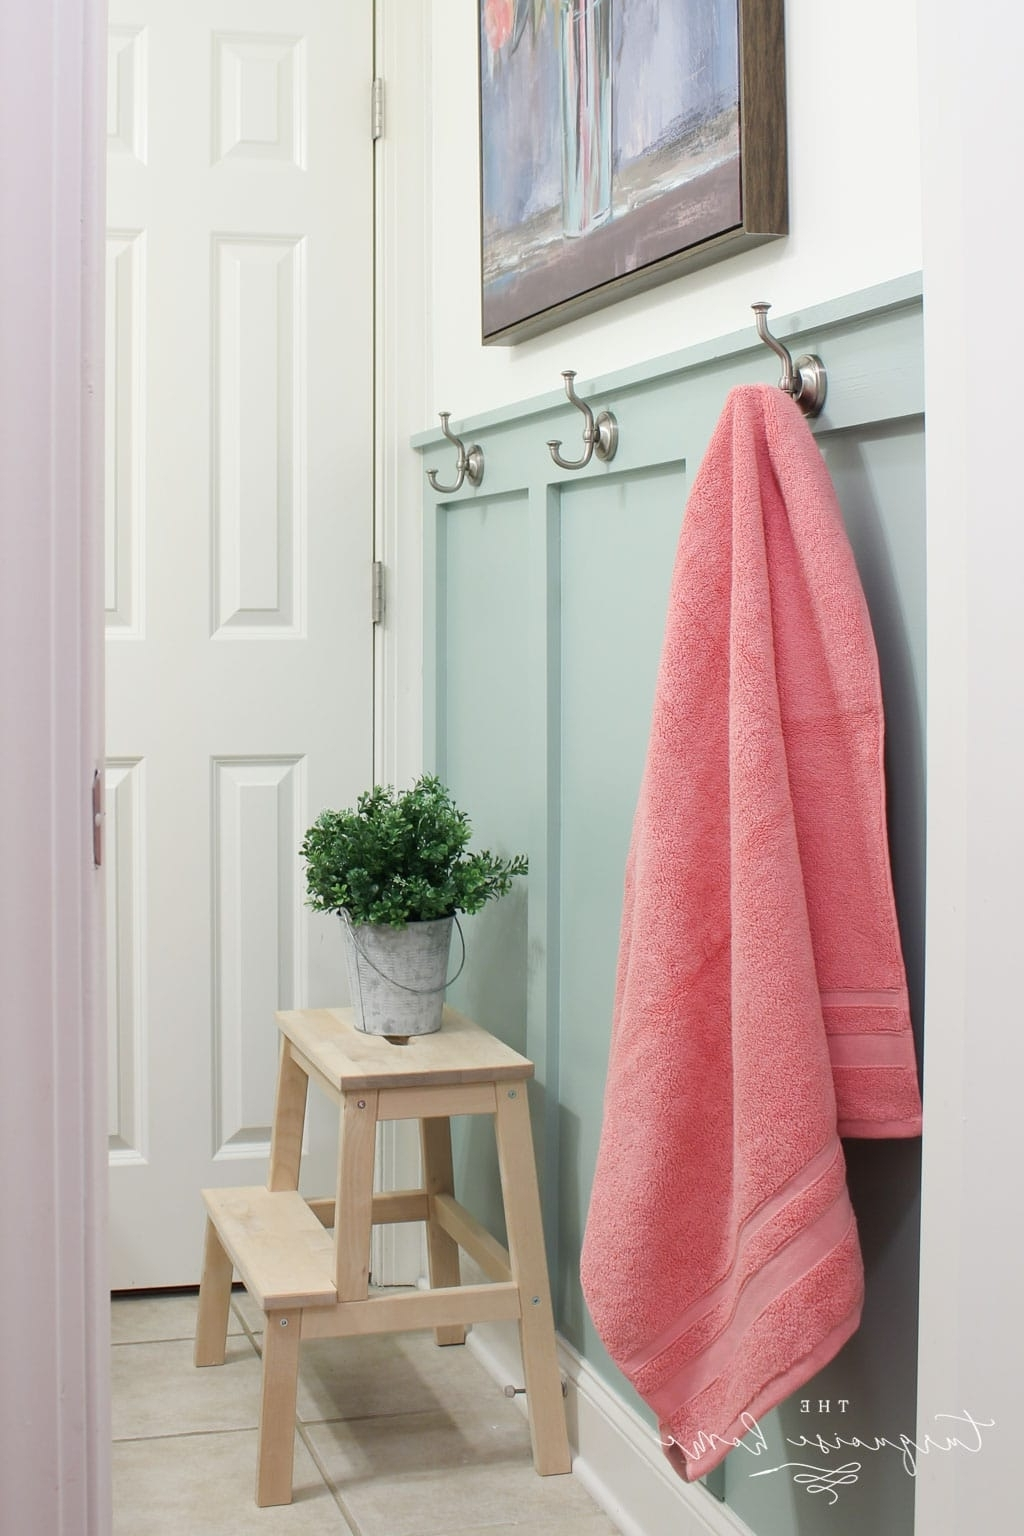 Diy Board And Batten In The Girls' Bathroom   The Turquoise Home Board And Batten Small Bathroom